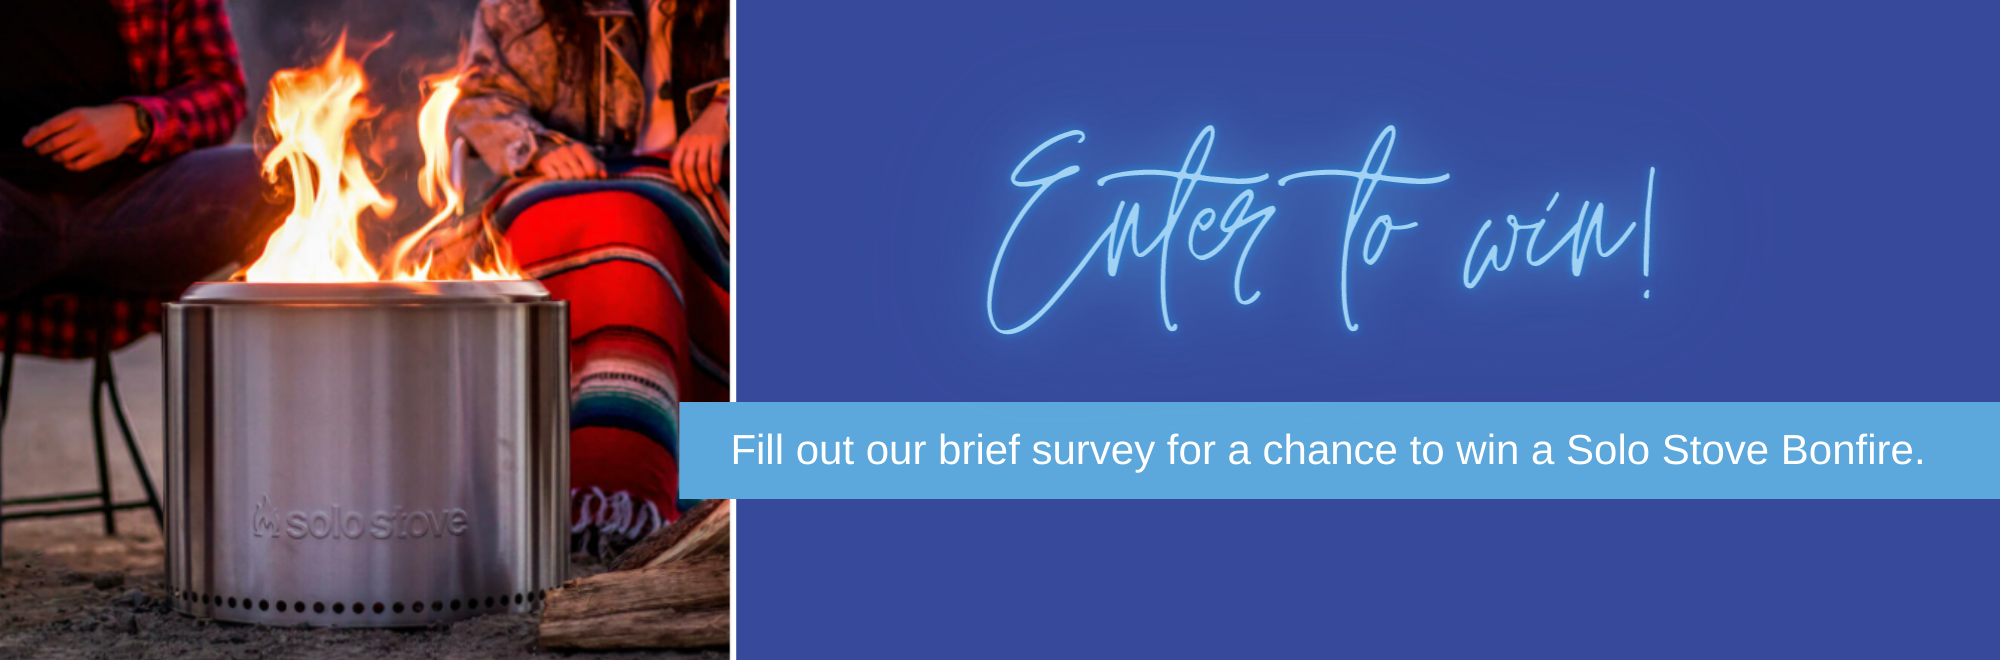 Enter to win. Fill out our brief survey for a chance to win a Solo Stove Bonfire.